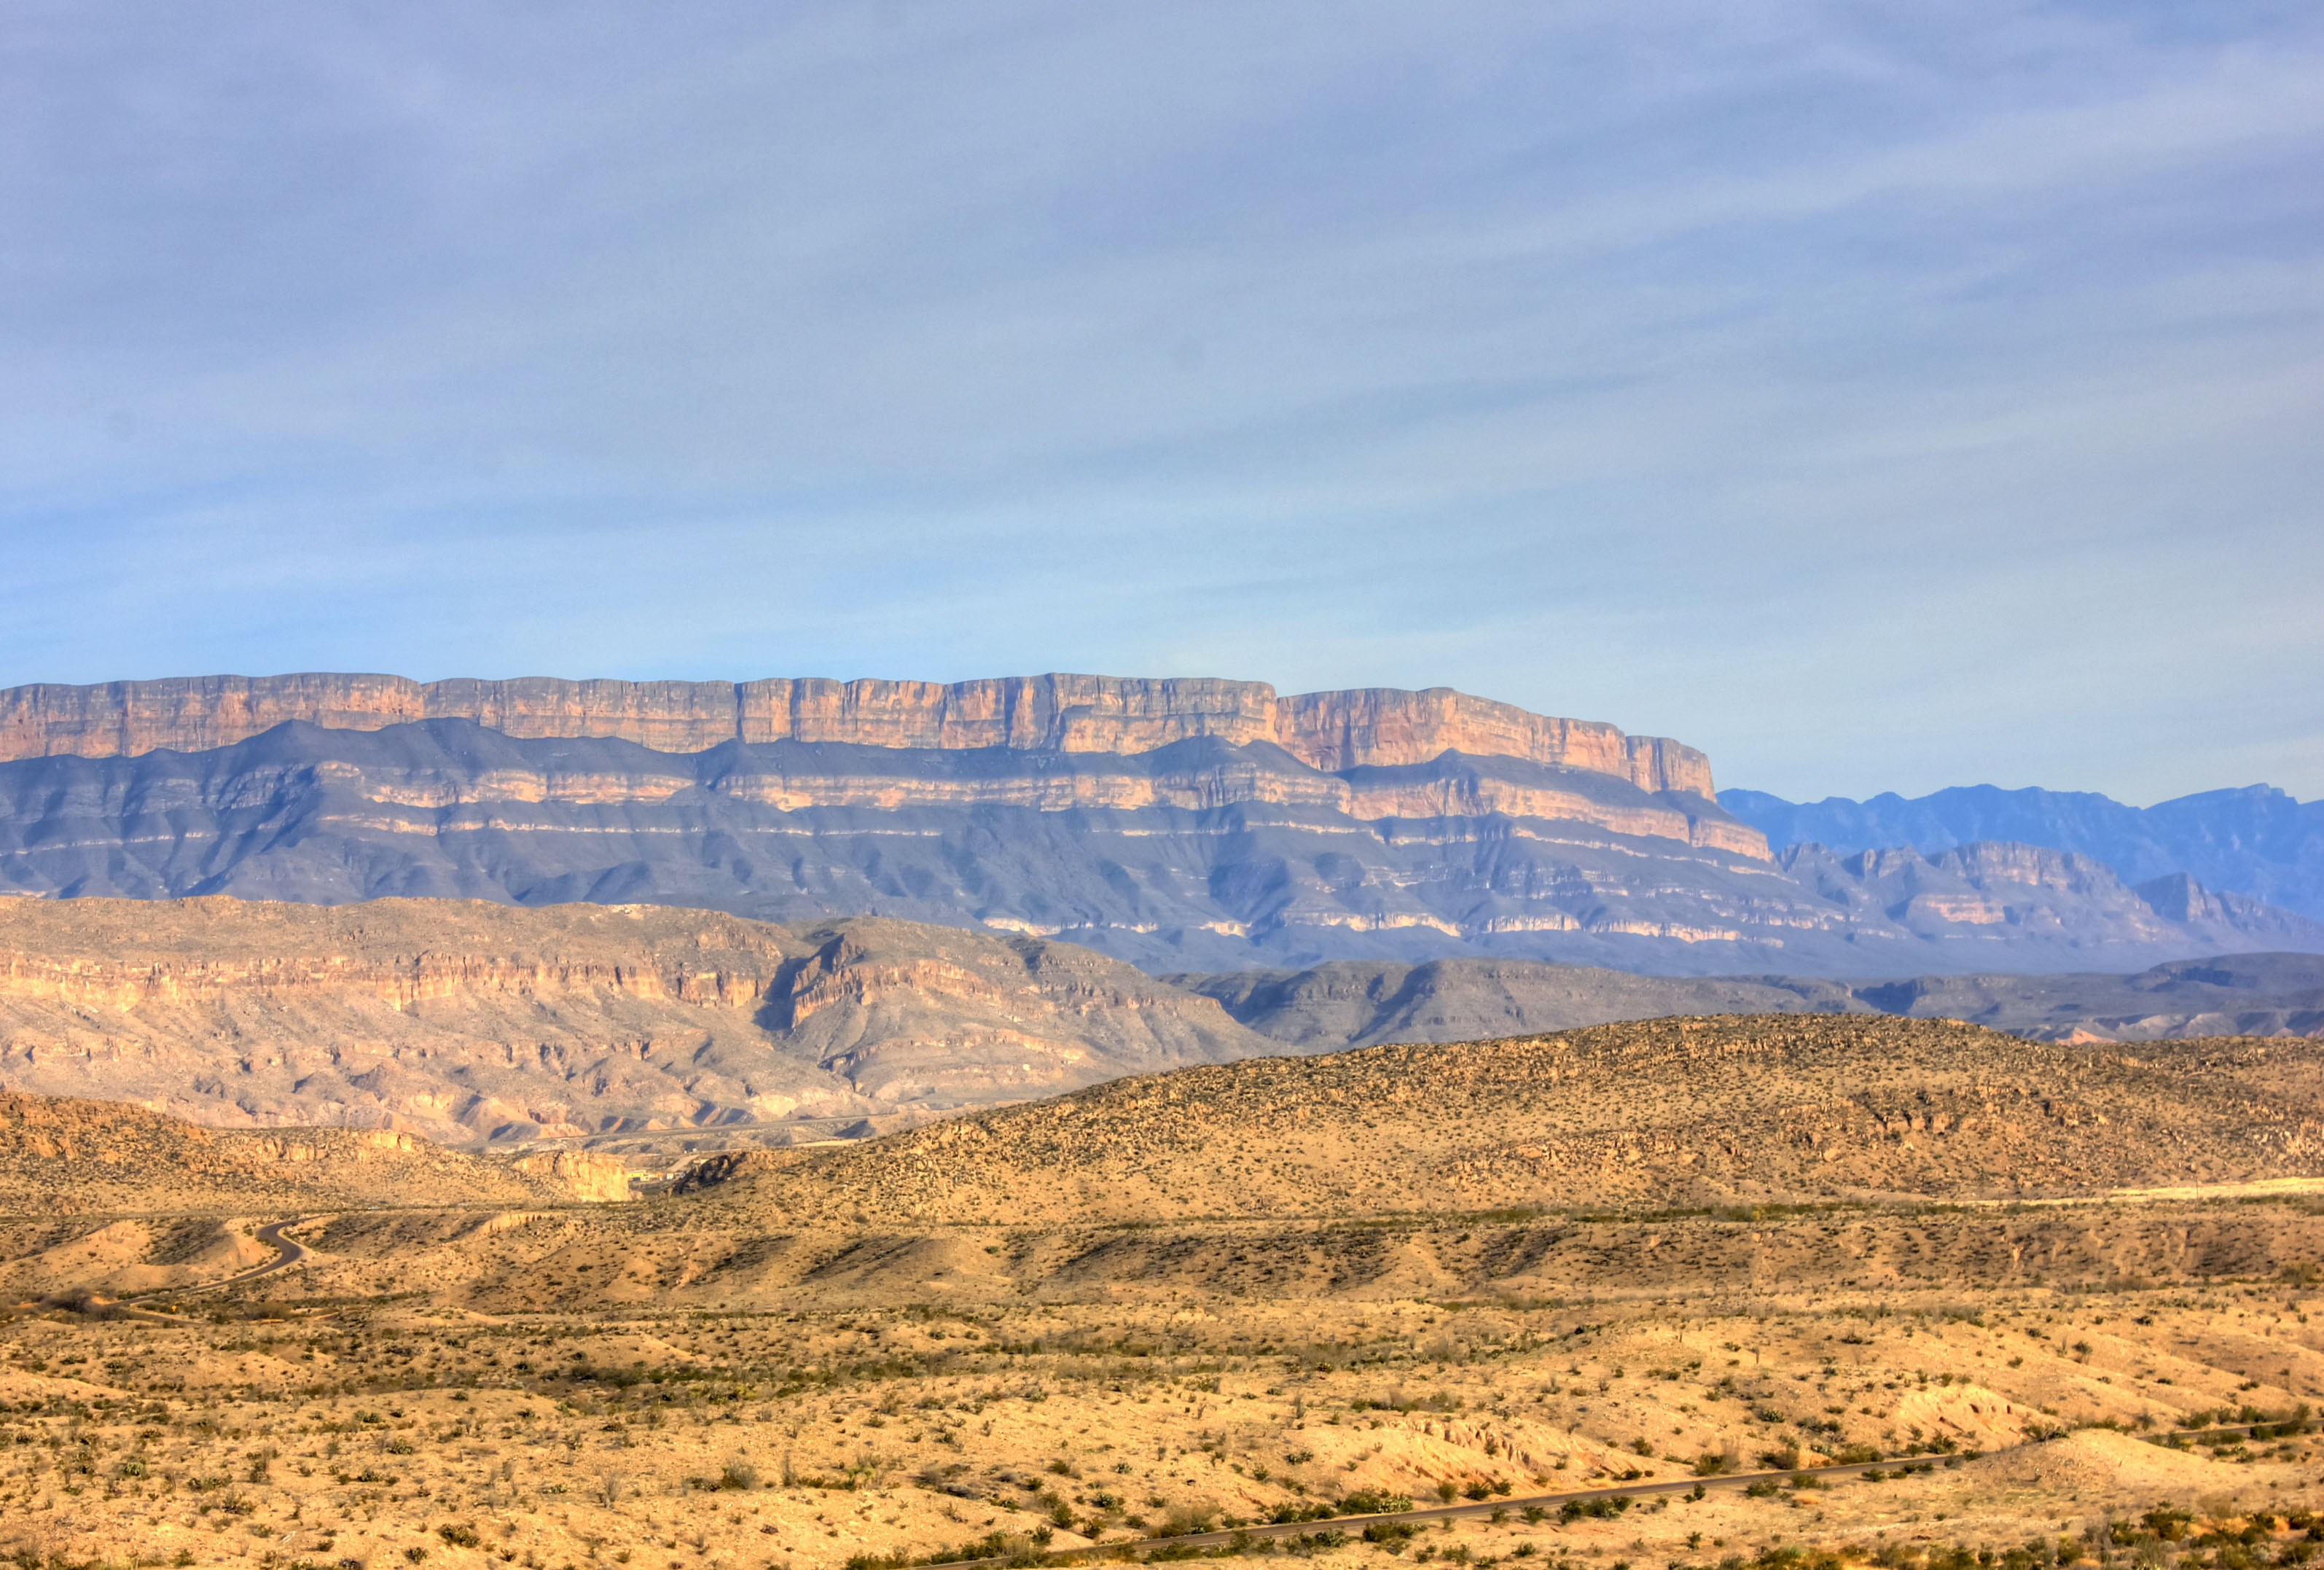 How far is Big Bend National Park from Fort Worth